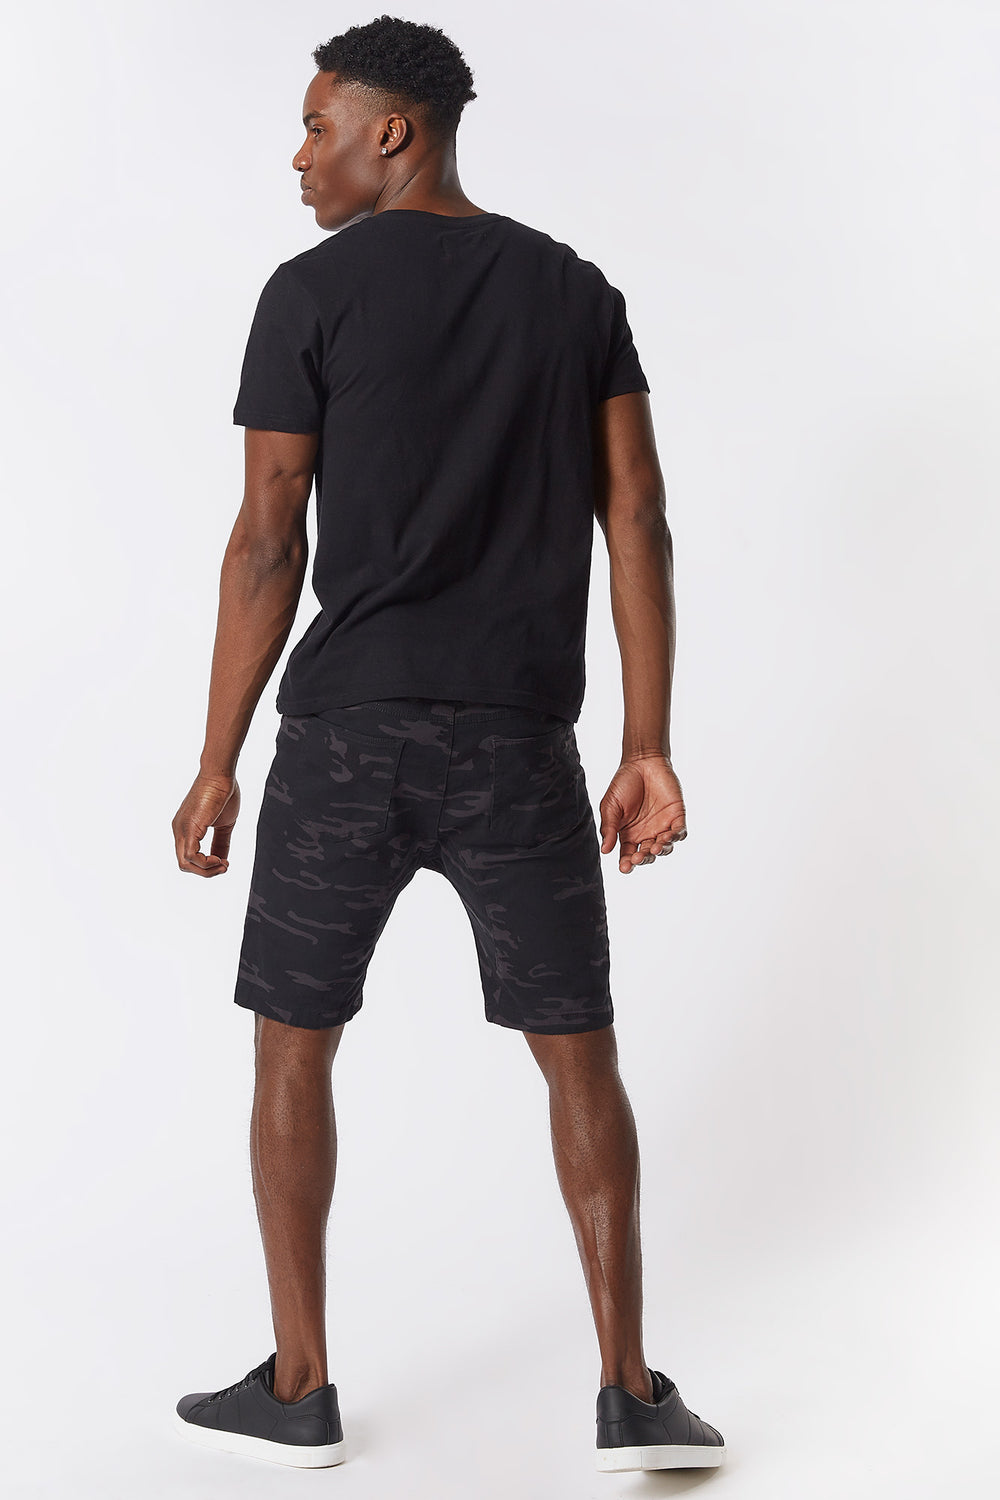 Camo Twill Drawstring Short Black with White